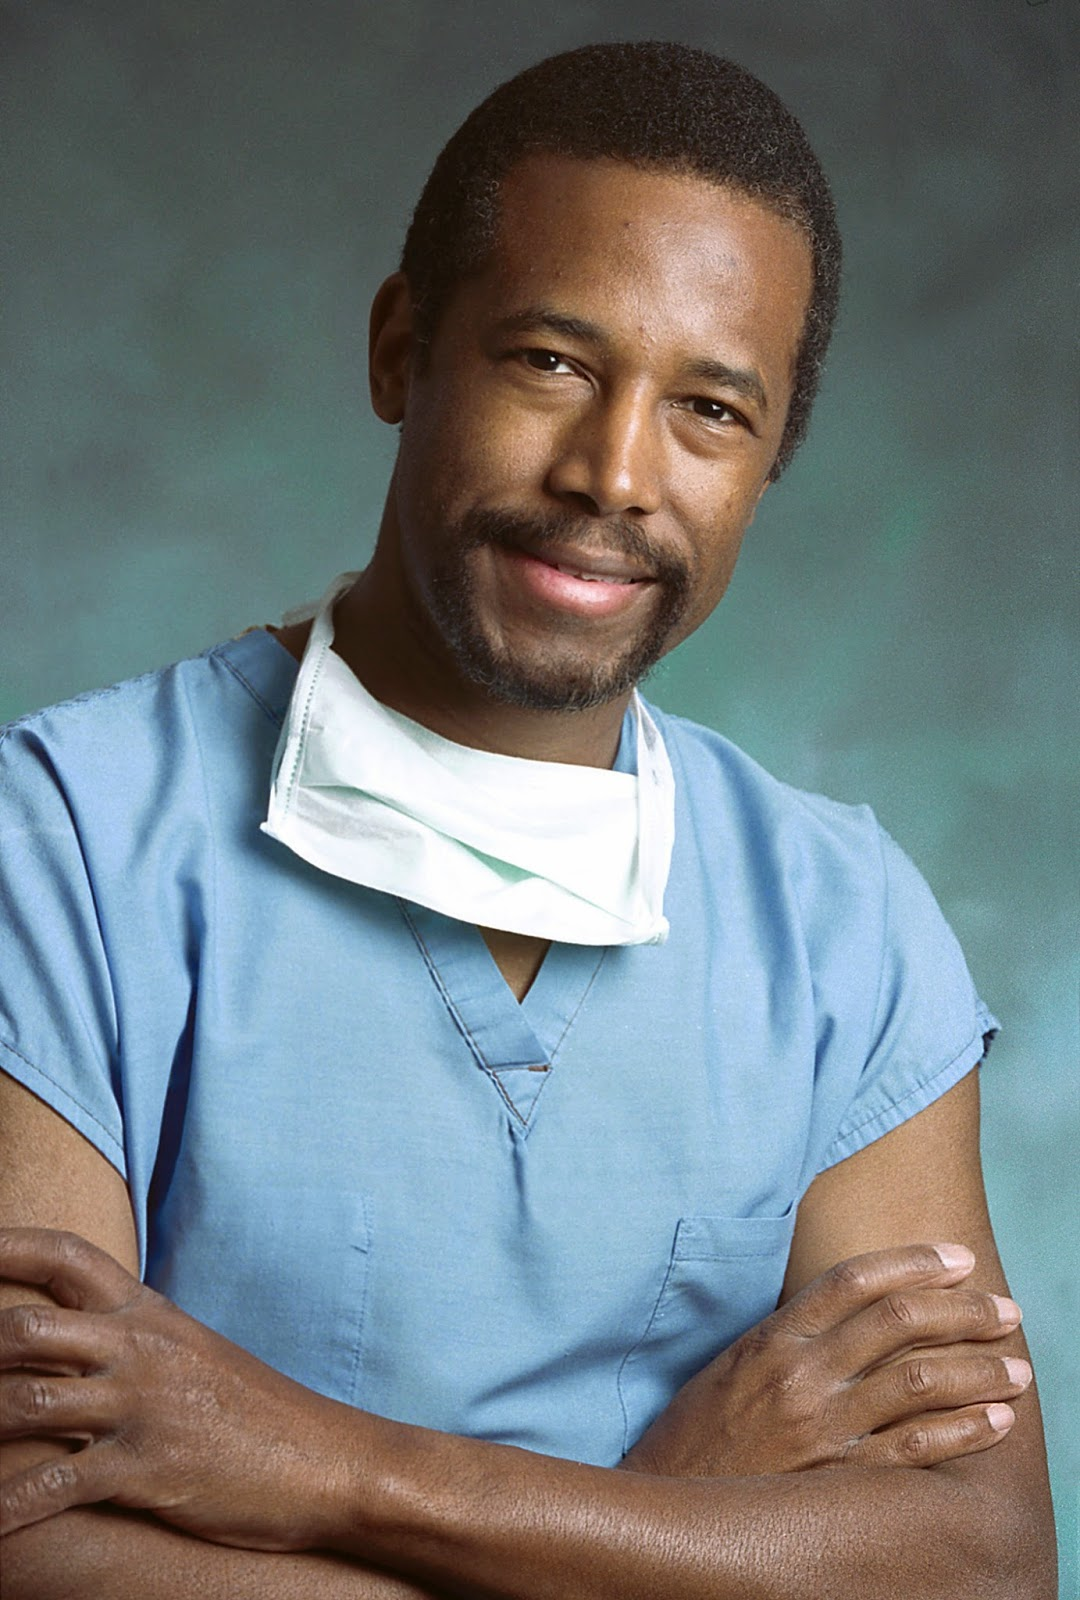 Dr. Ben Carson; Dr. Benjamin Carson: Gifted Hands movie w Cuba Gooding Jr, Gifted Hands book, neurosurgery on babies